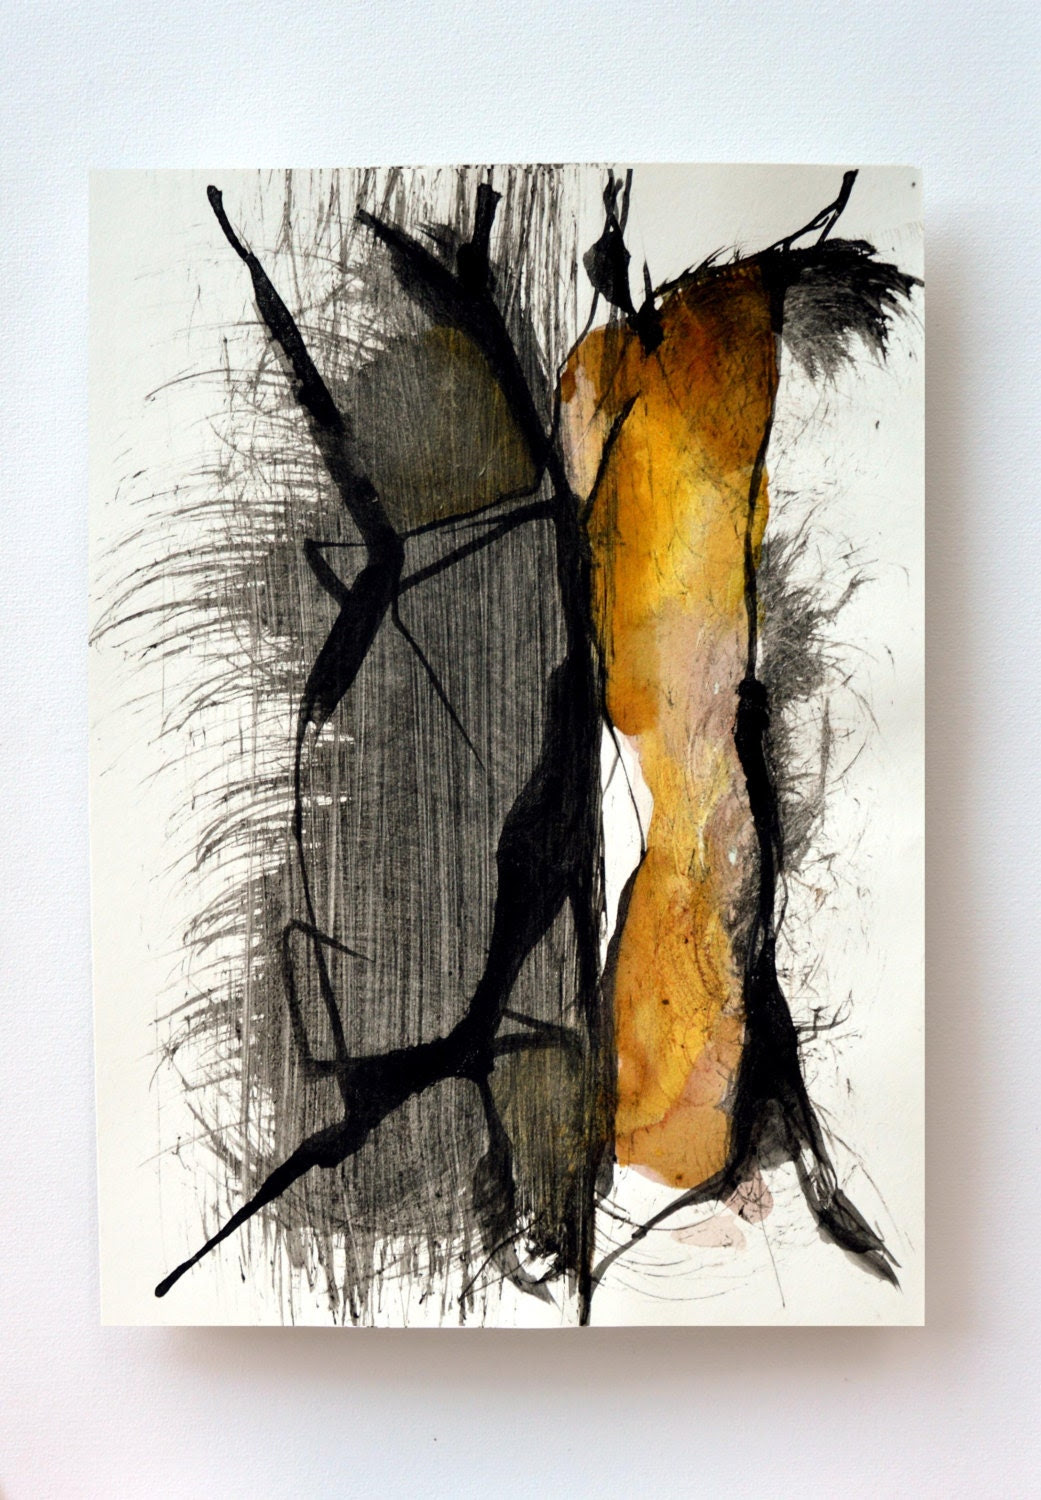 Original abstract art ink drawing - Constant transformation-black, brown, beige, yellow & white,modern art, contemporany art - ComArt